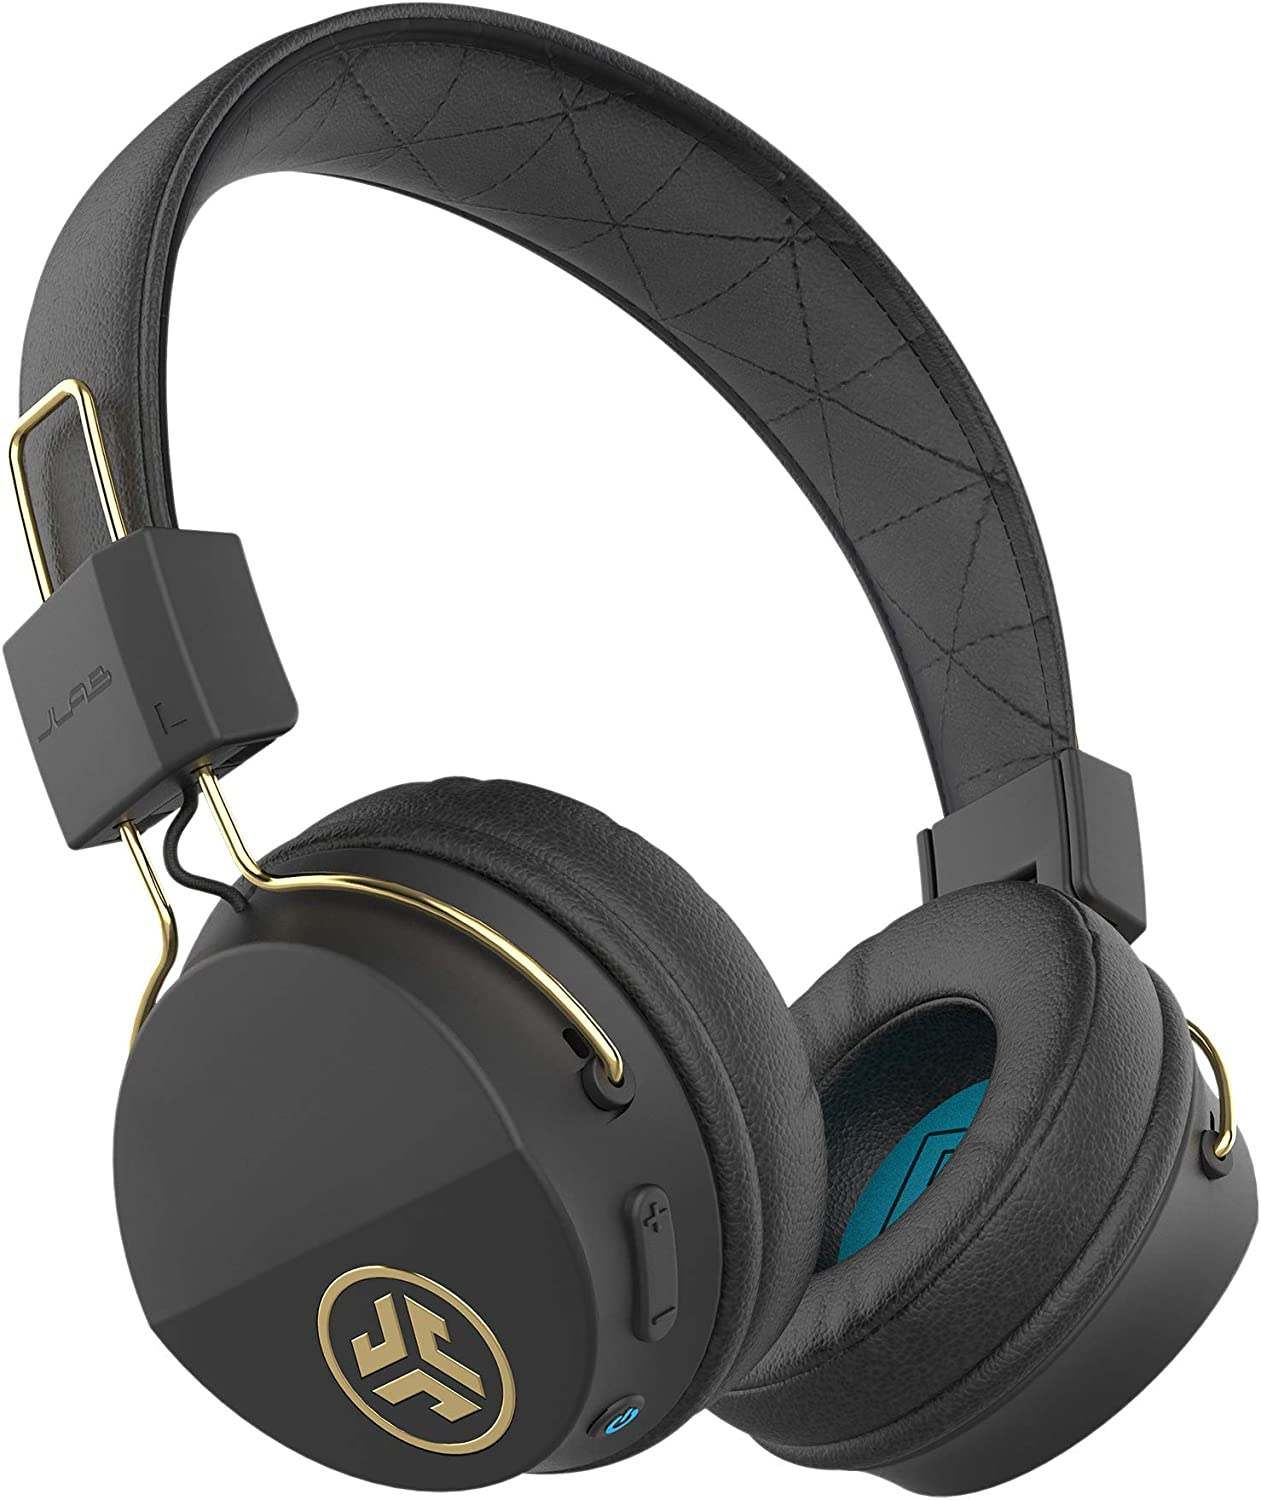 JLab Audio Studio ICON Bluetooth Wireless On-Ear Headphones Ultra-Plush Cushions Wireless Headphones 13 Hour Bluetooth Playtime 40mm Neodymium Drivers Track Control Microphone Black Gold